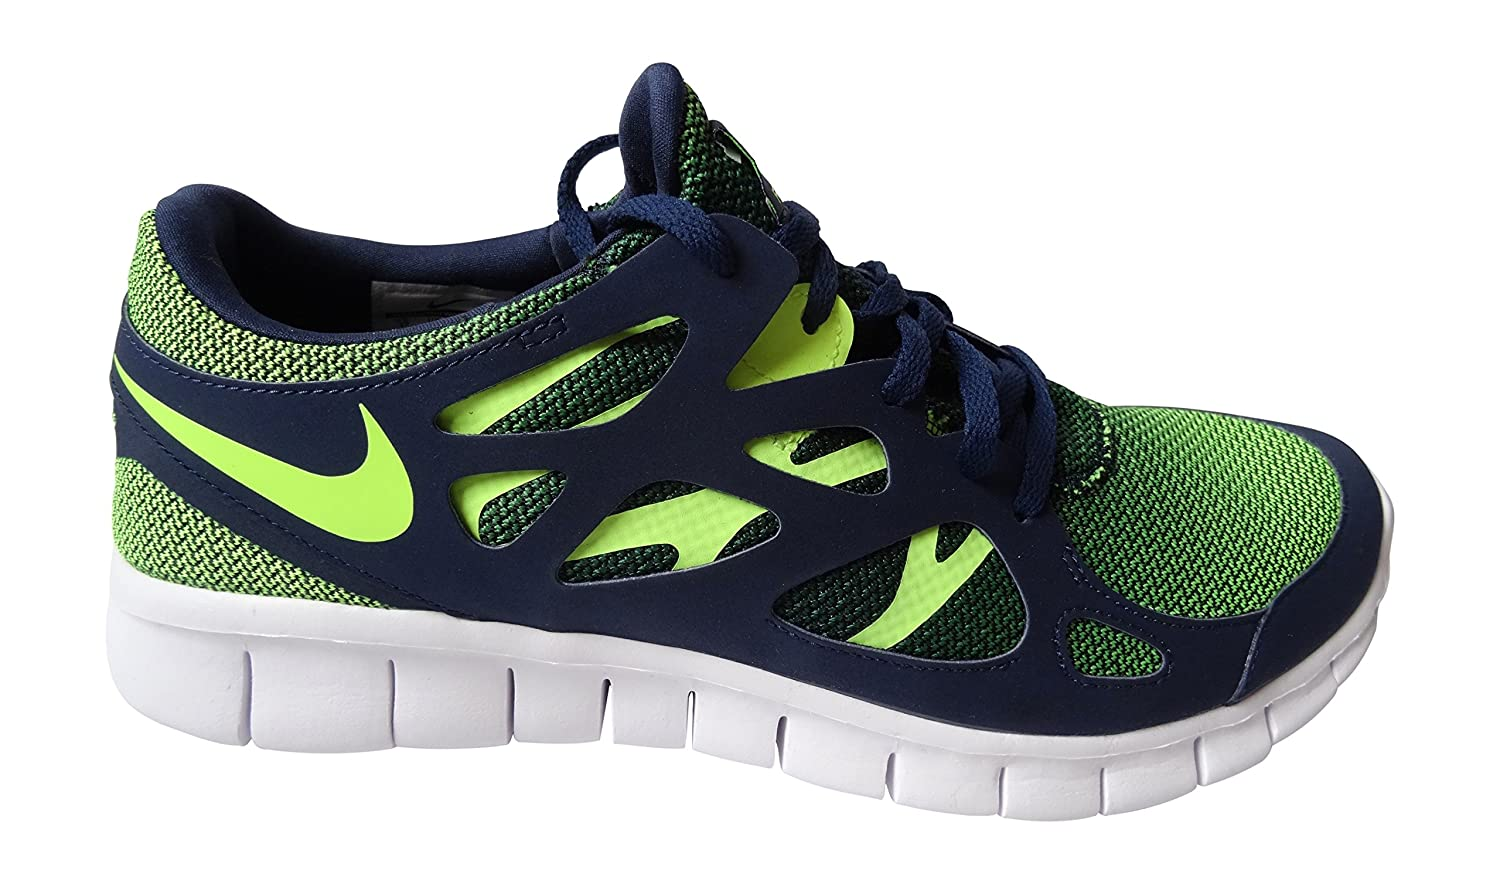 8dac43a31eb ... order nike free run 2 nsw mens running trainers 540244 sneakers shoes  uk 7 us 8